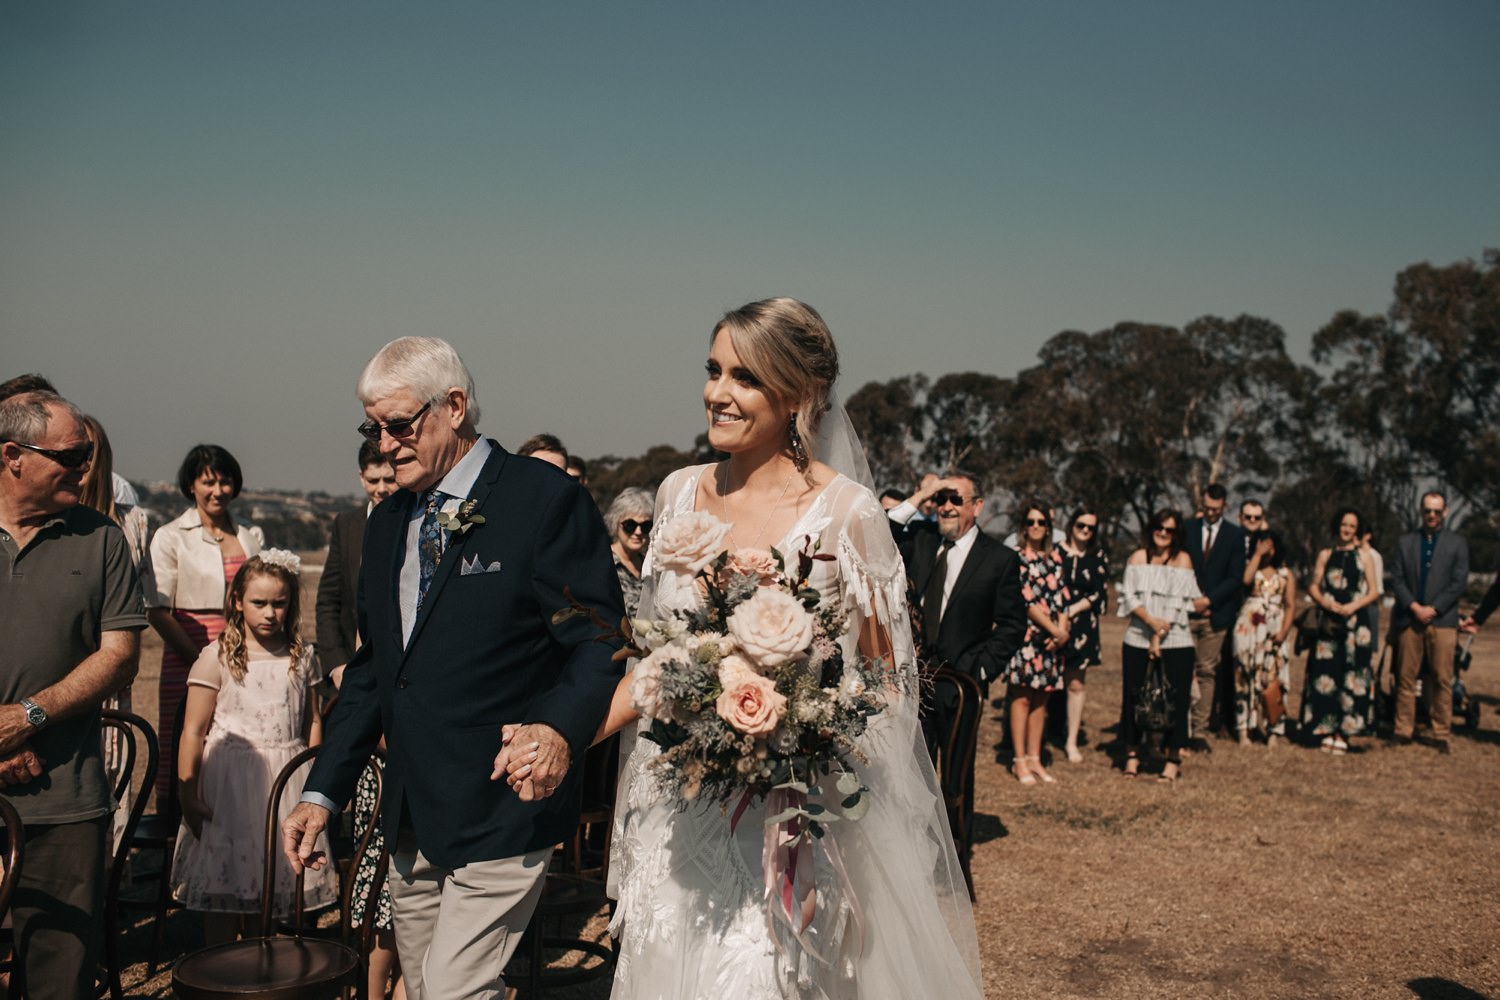 relaxed-wedding-photographer-melbourne-bellarine-peninsula-baie-winery_0032.jpg